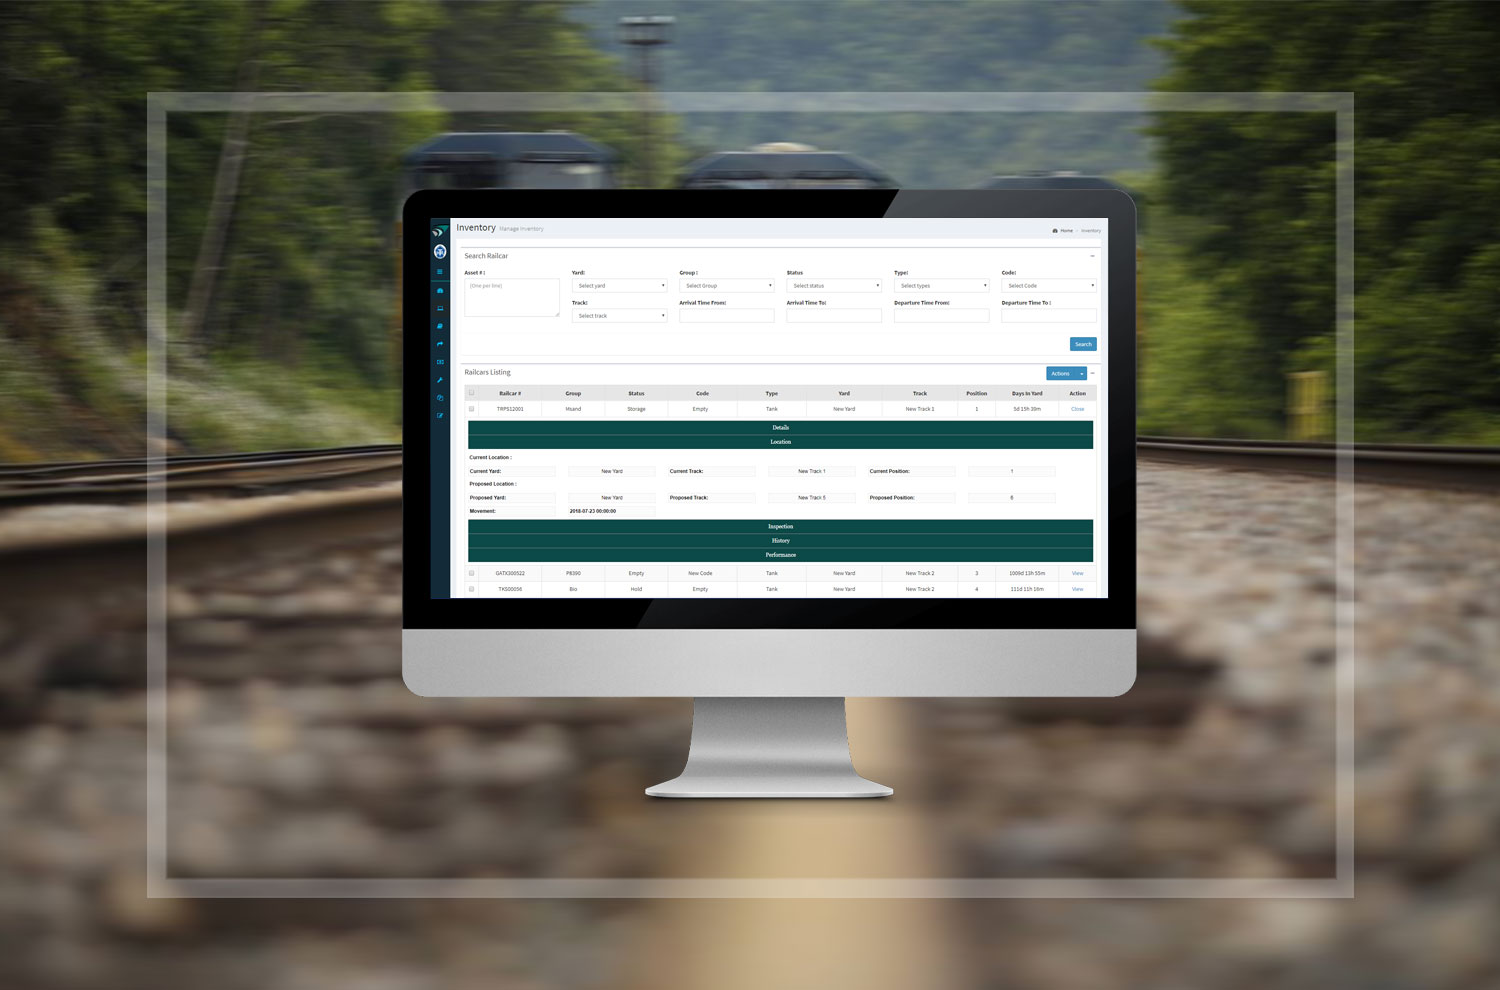 Program to search and report on railcars